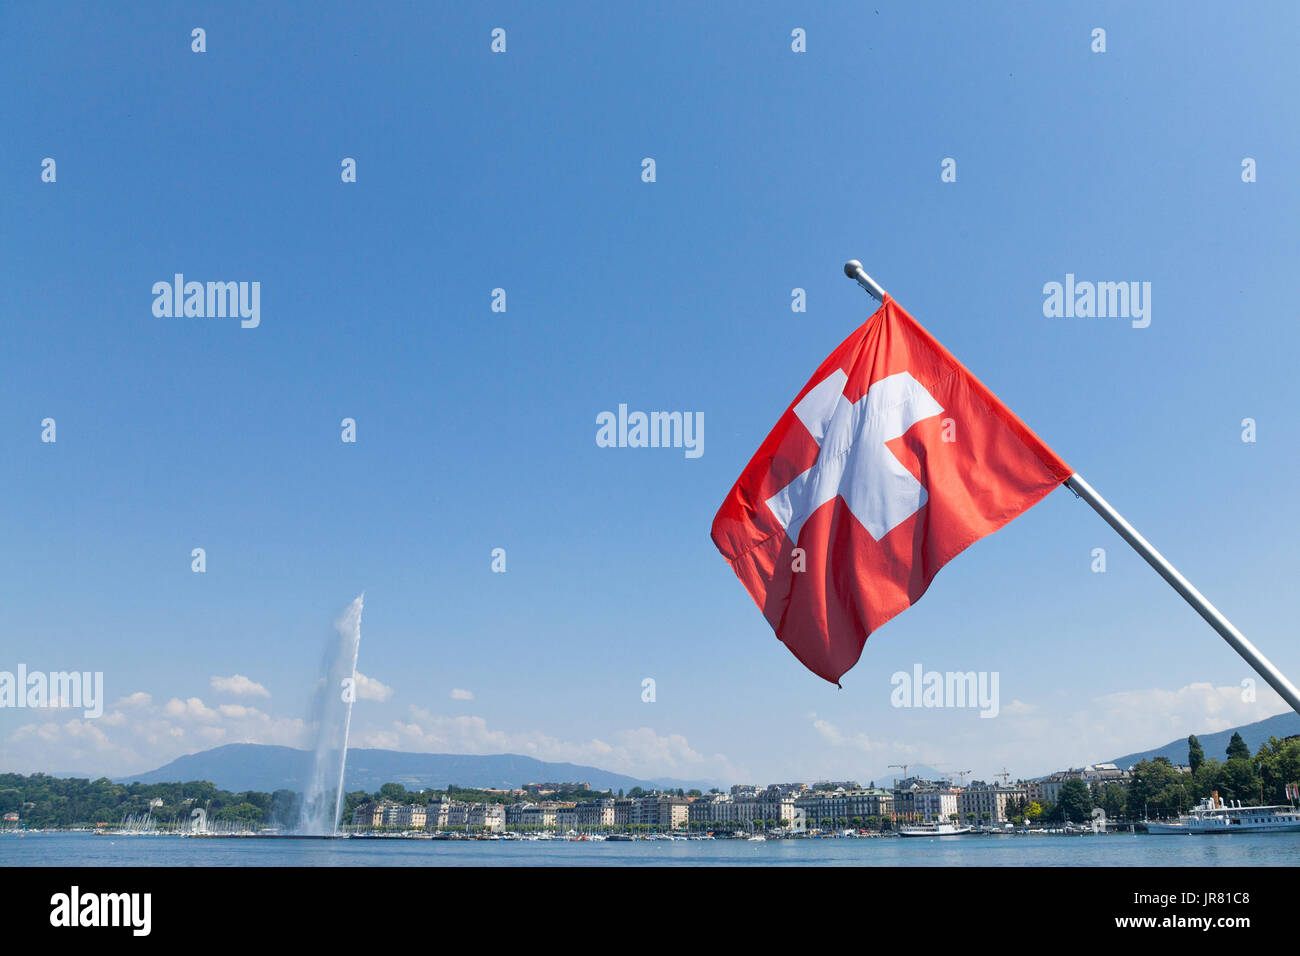 Flag of the flag of Switerland in the city center of Geneva, on the Leman lake. The iconic Jet d'Eau (Water Jet) can be seen in the background  Pictur - Stock Image